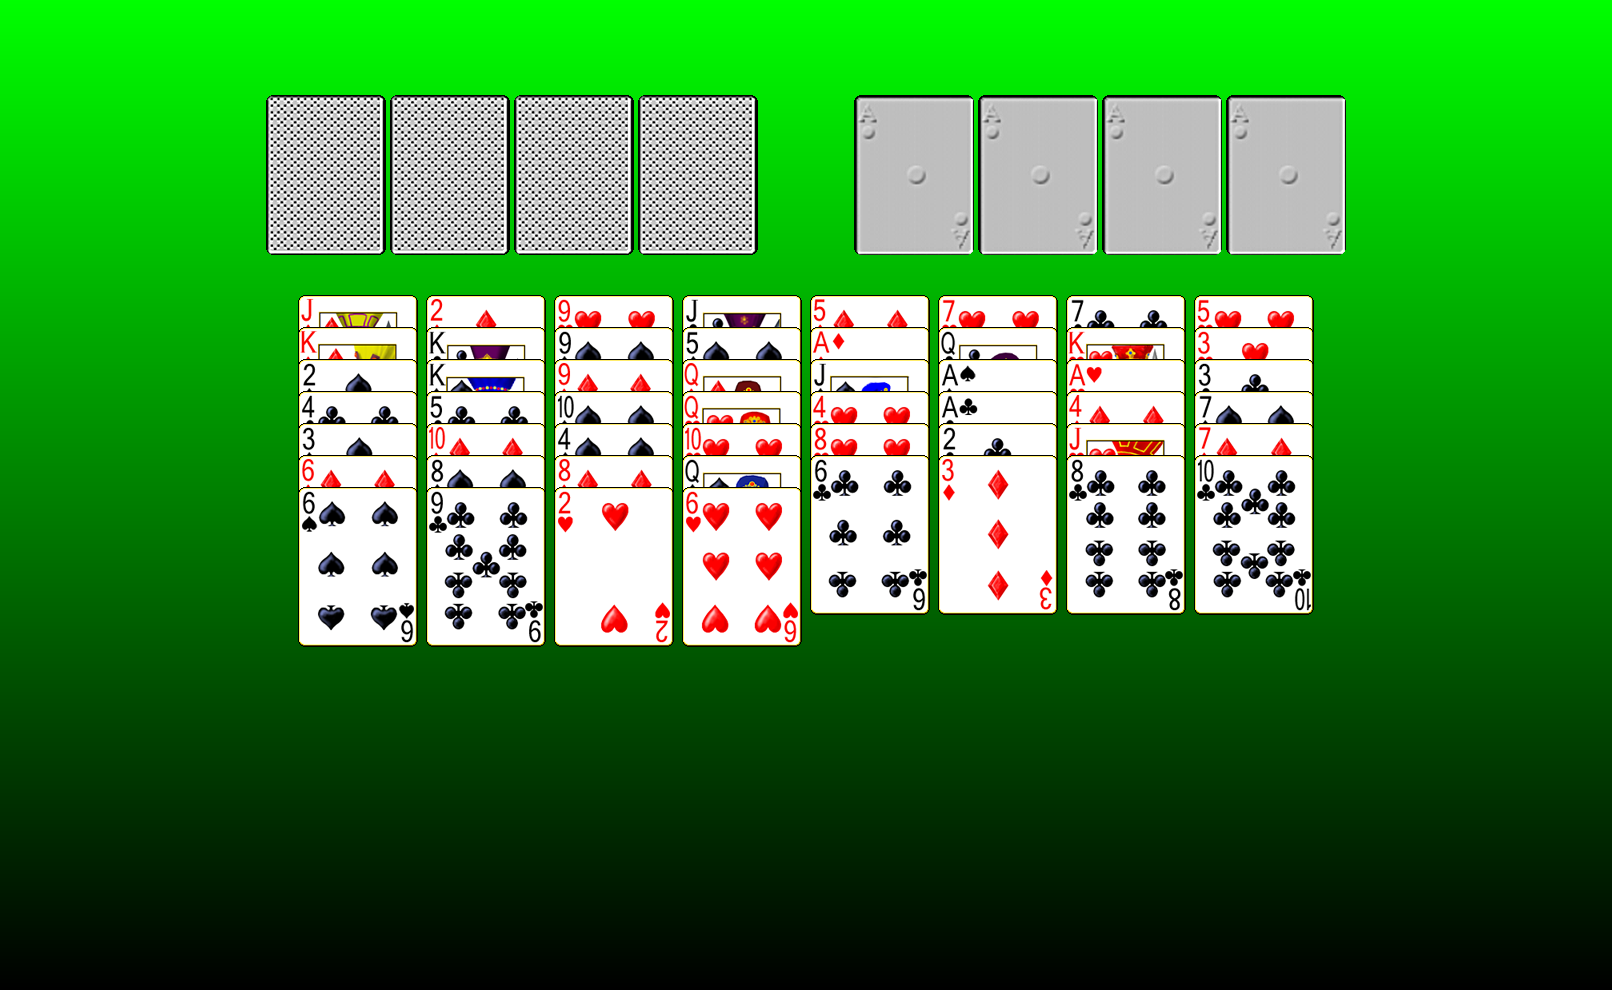 Free download of Solitaire